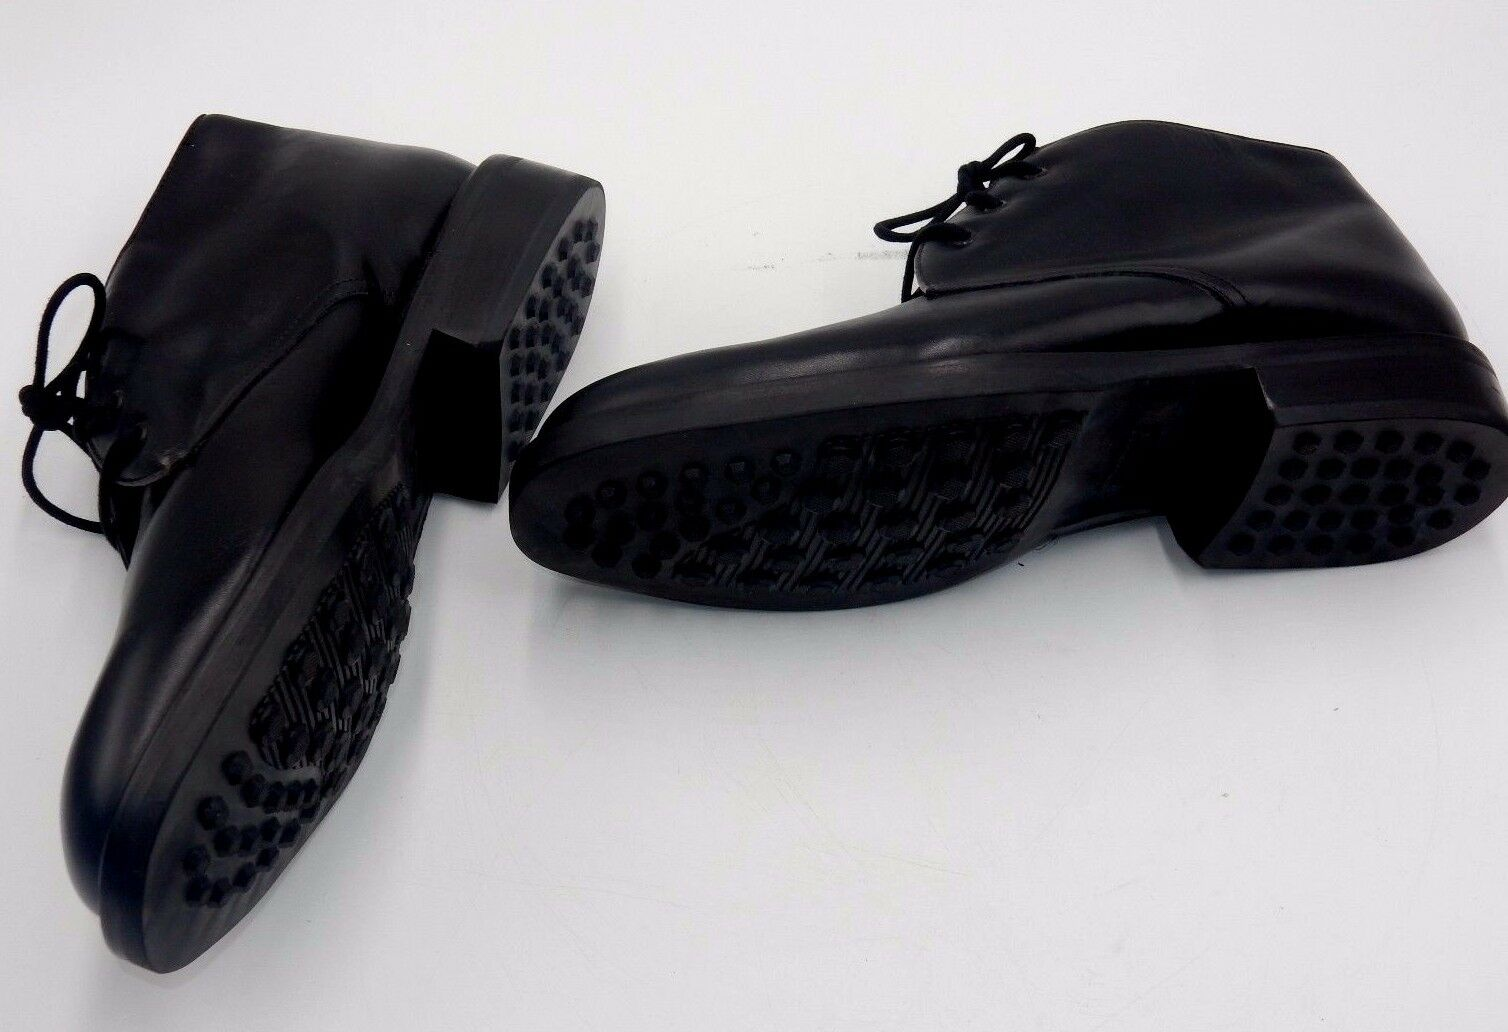 COLE HAAN HAAN HAAN FUR LINED LACE UP ANKLE BOOTS SIZE  10  MADE IN BRAZIL 75723b